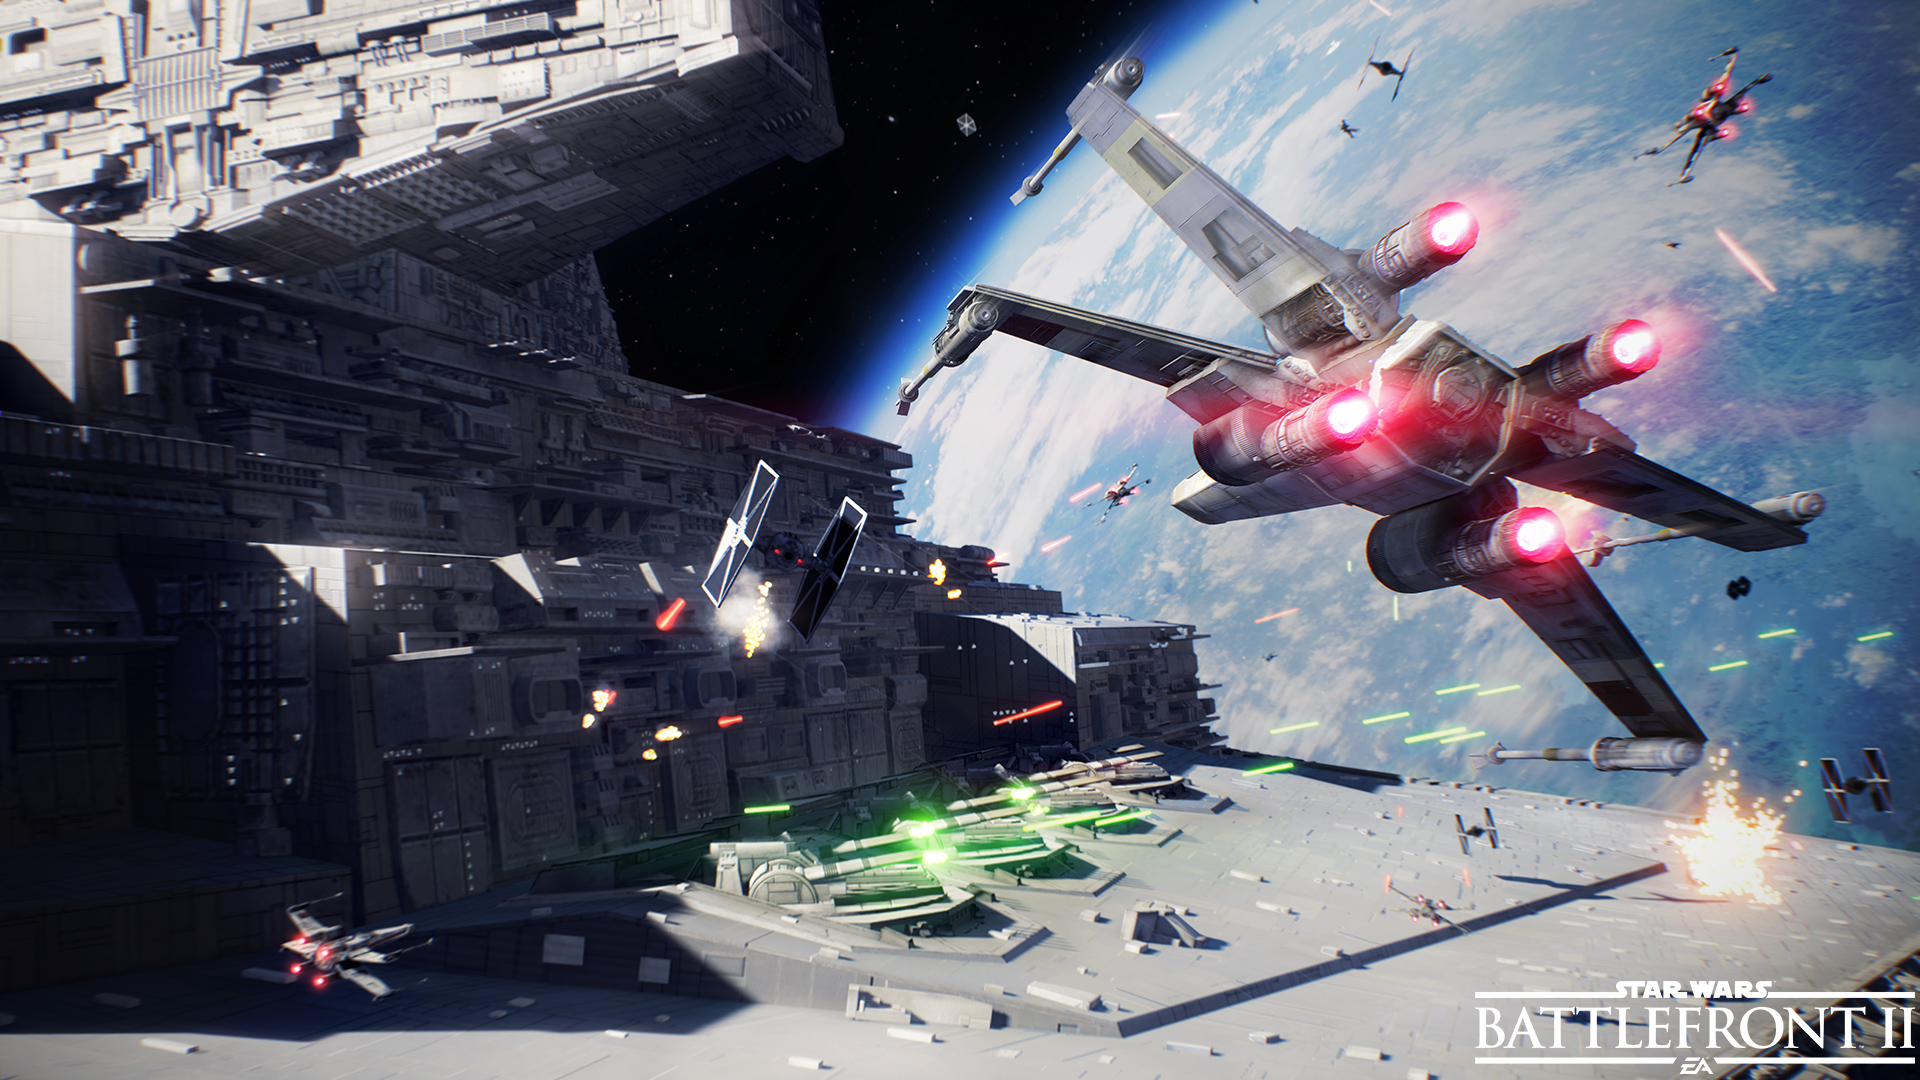 Battlefront 2 adds new Blast map and Hero ship in latest update